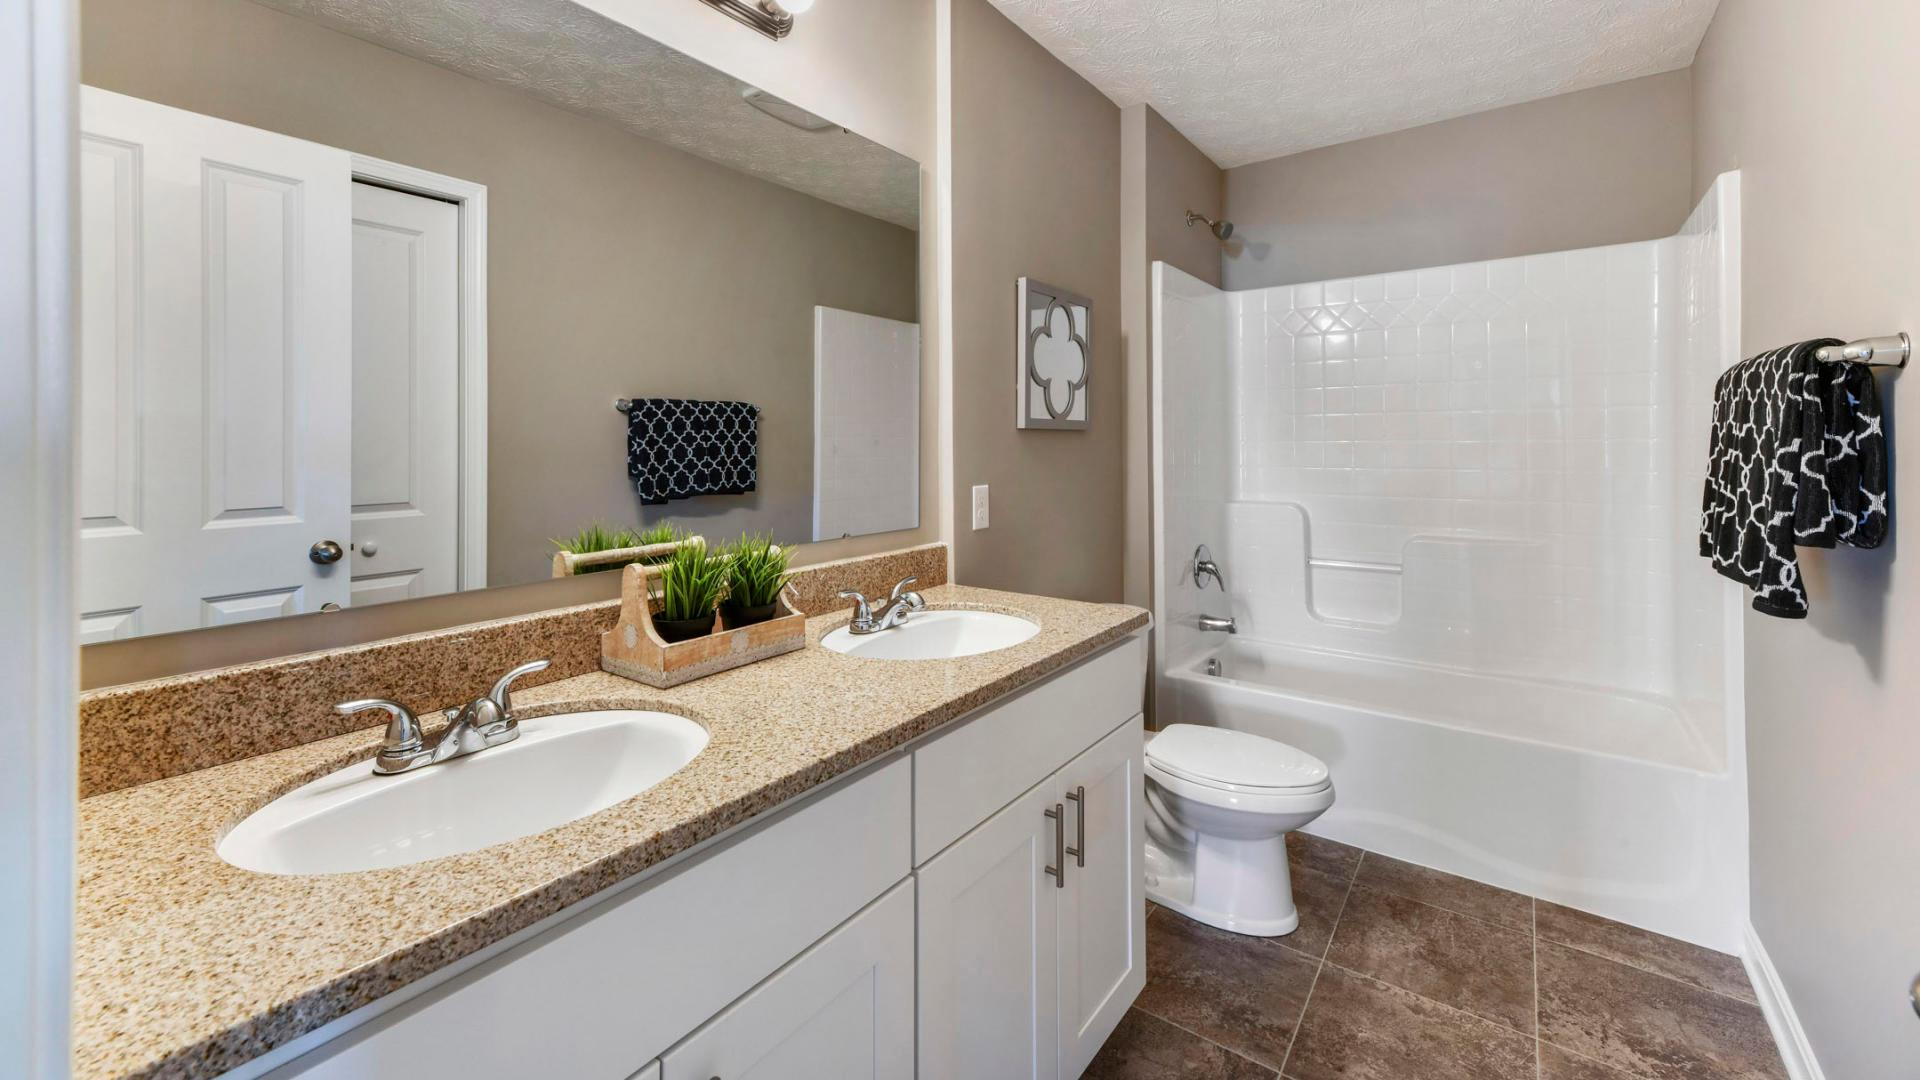 Bathroom featured in the Nashville By Maronda Homes in Pittsburgh, PA